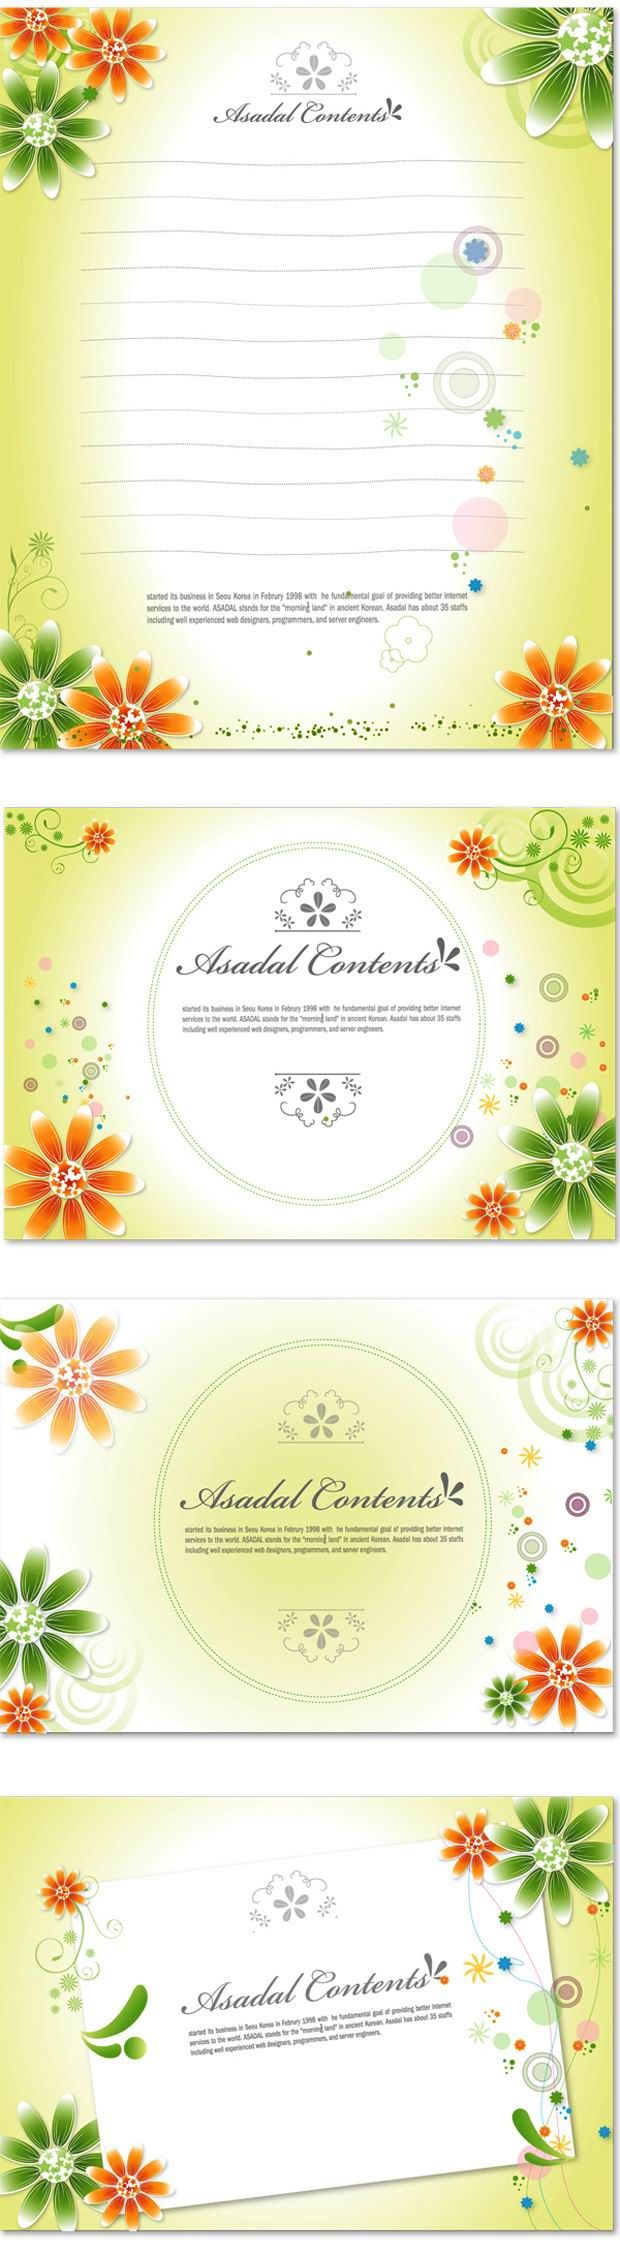 Beautiful lace background vector map download